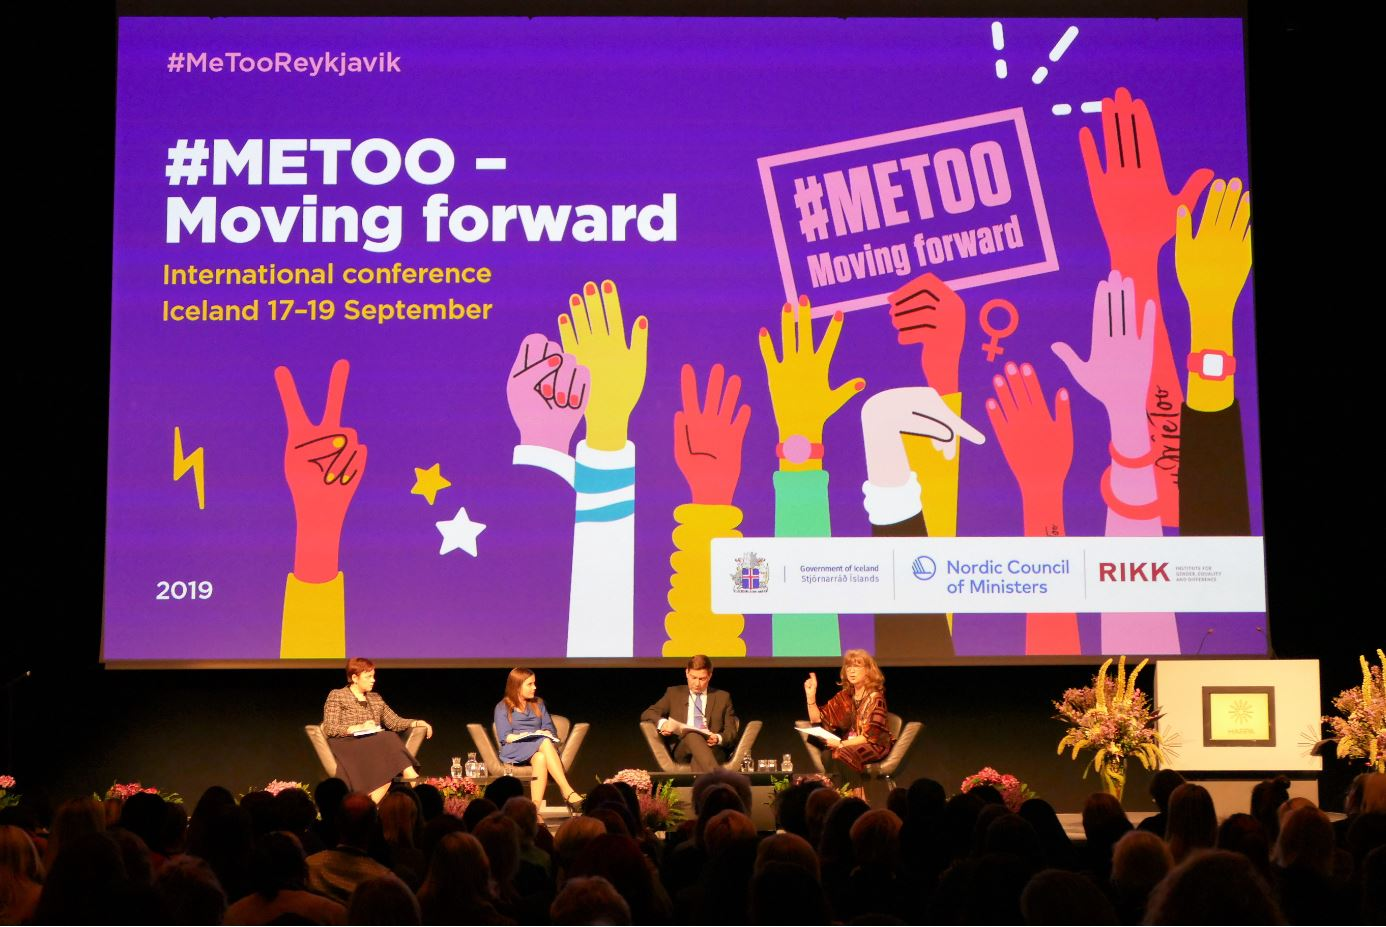 Theme: What happened after #metoo?